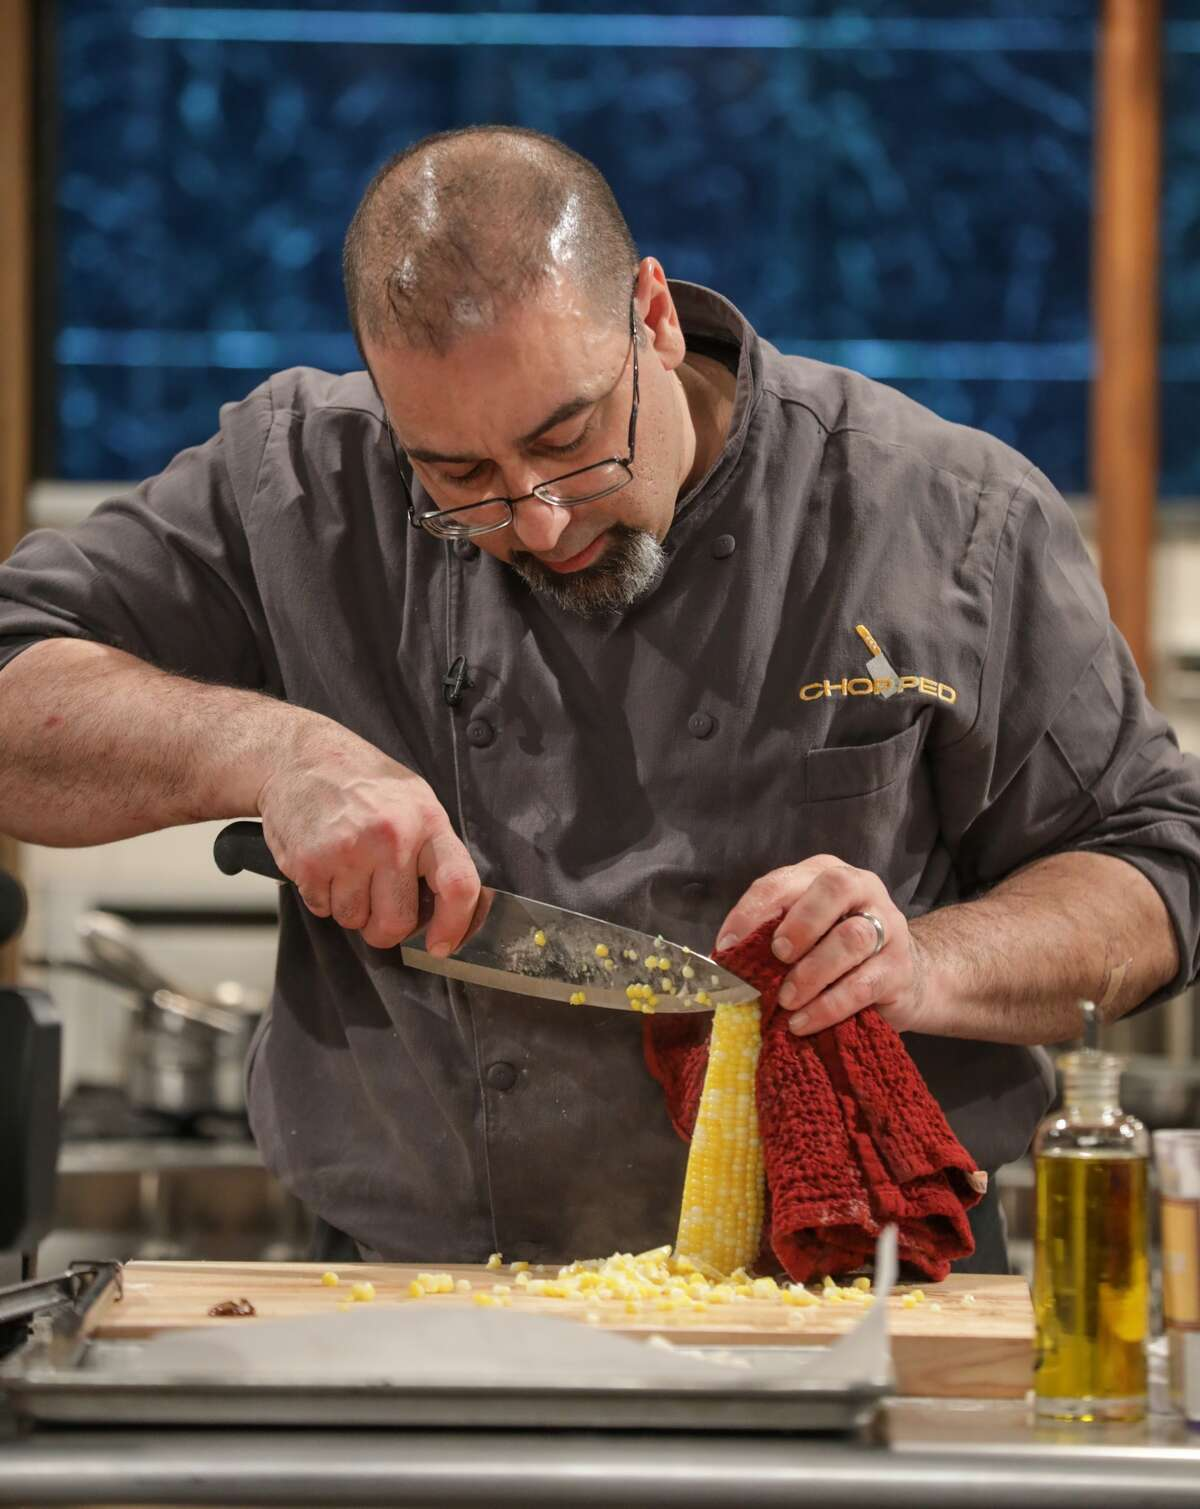 """Stephen Costanzo, co-owner and head chef at Olio in Stamford prepares polenta on an episode of Food Network's """"Chopped"""" that aired on Dec. 7, 2017. Costanzo won the competition."""